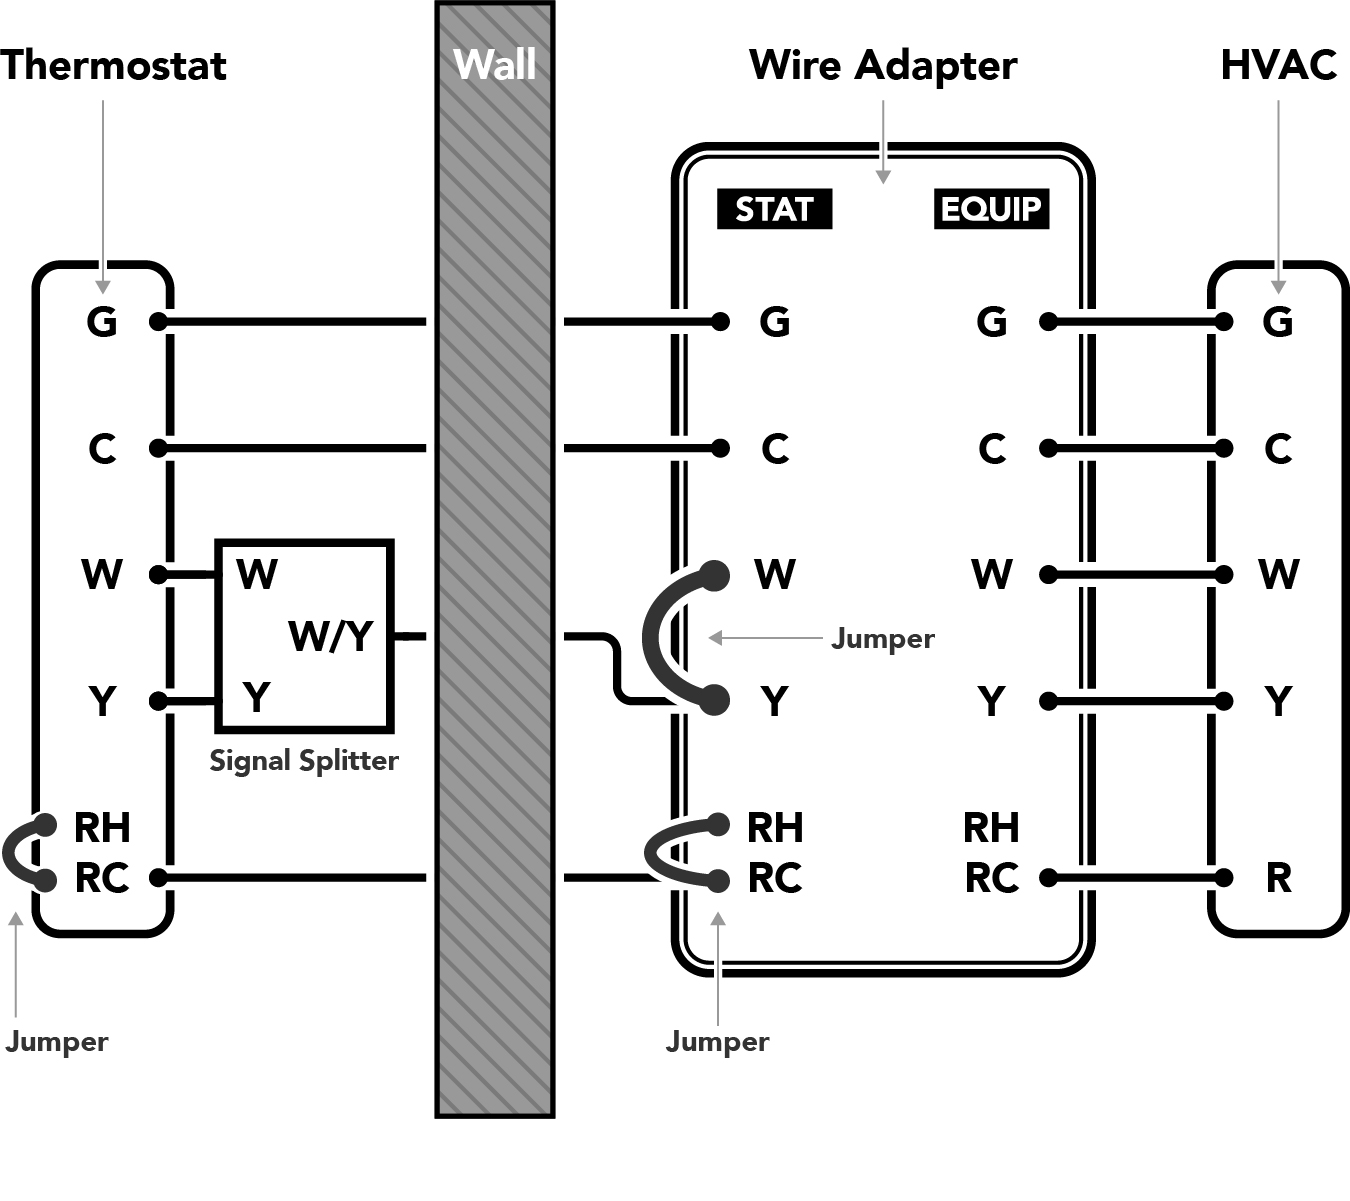 Diagram-01_Conventional-Heat-and-AC_4-Wires_2015-11-17_V4_Conventional_Heat-